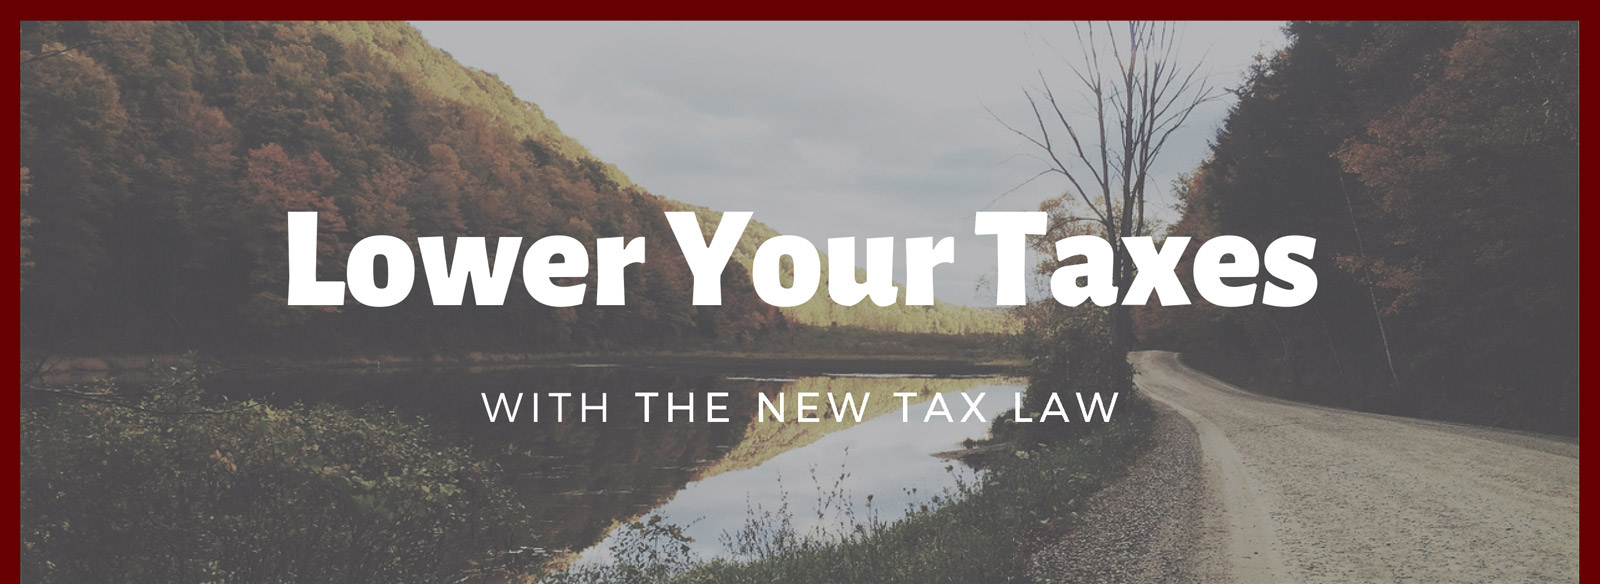 Lower Your Taxes With the New Tax Law